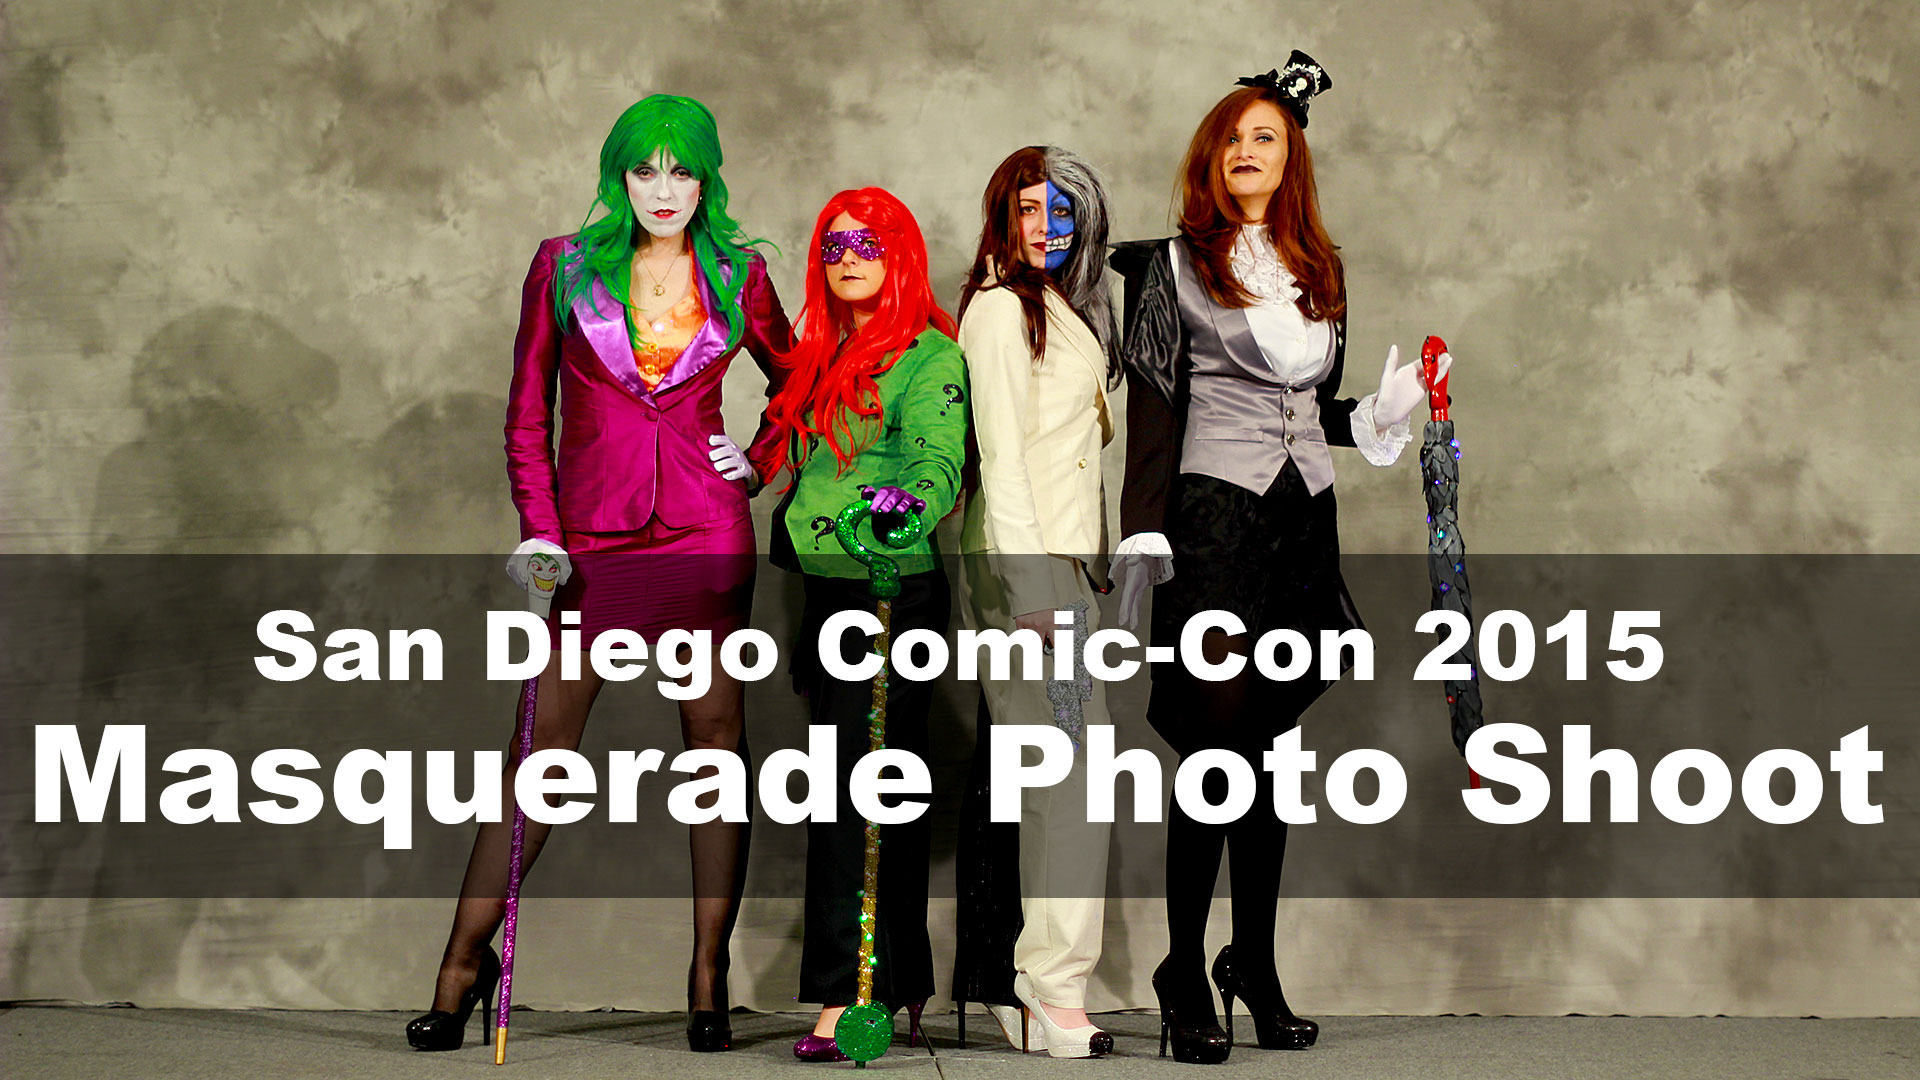 Comic-Con 2015 Masquerade Photo Shoot